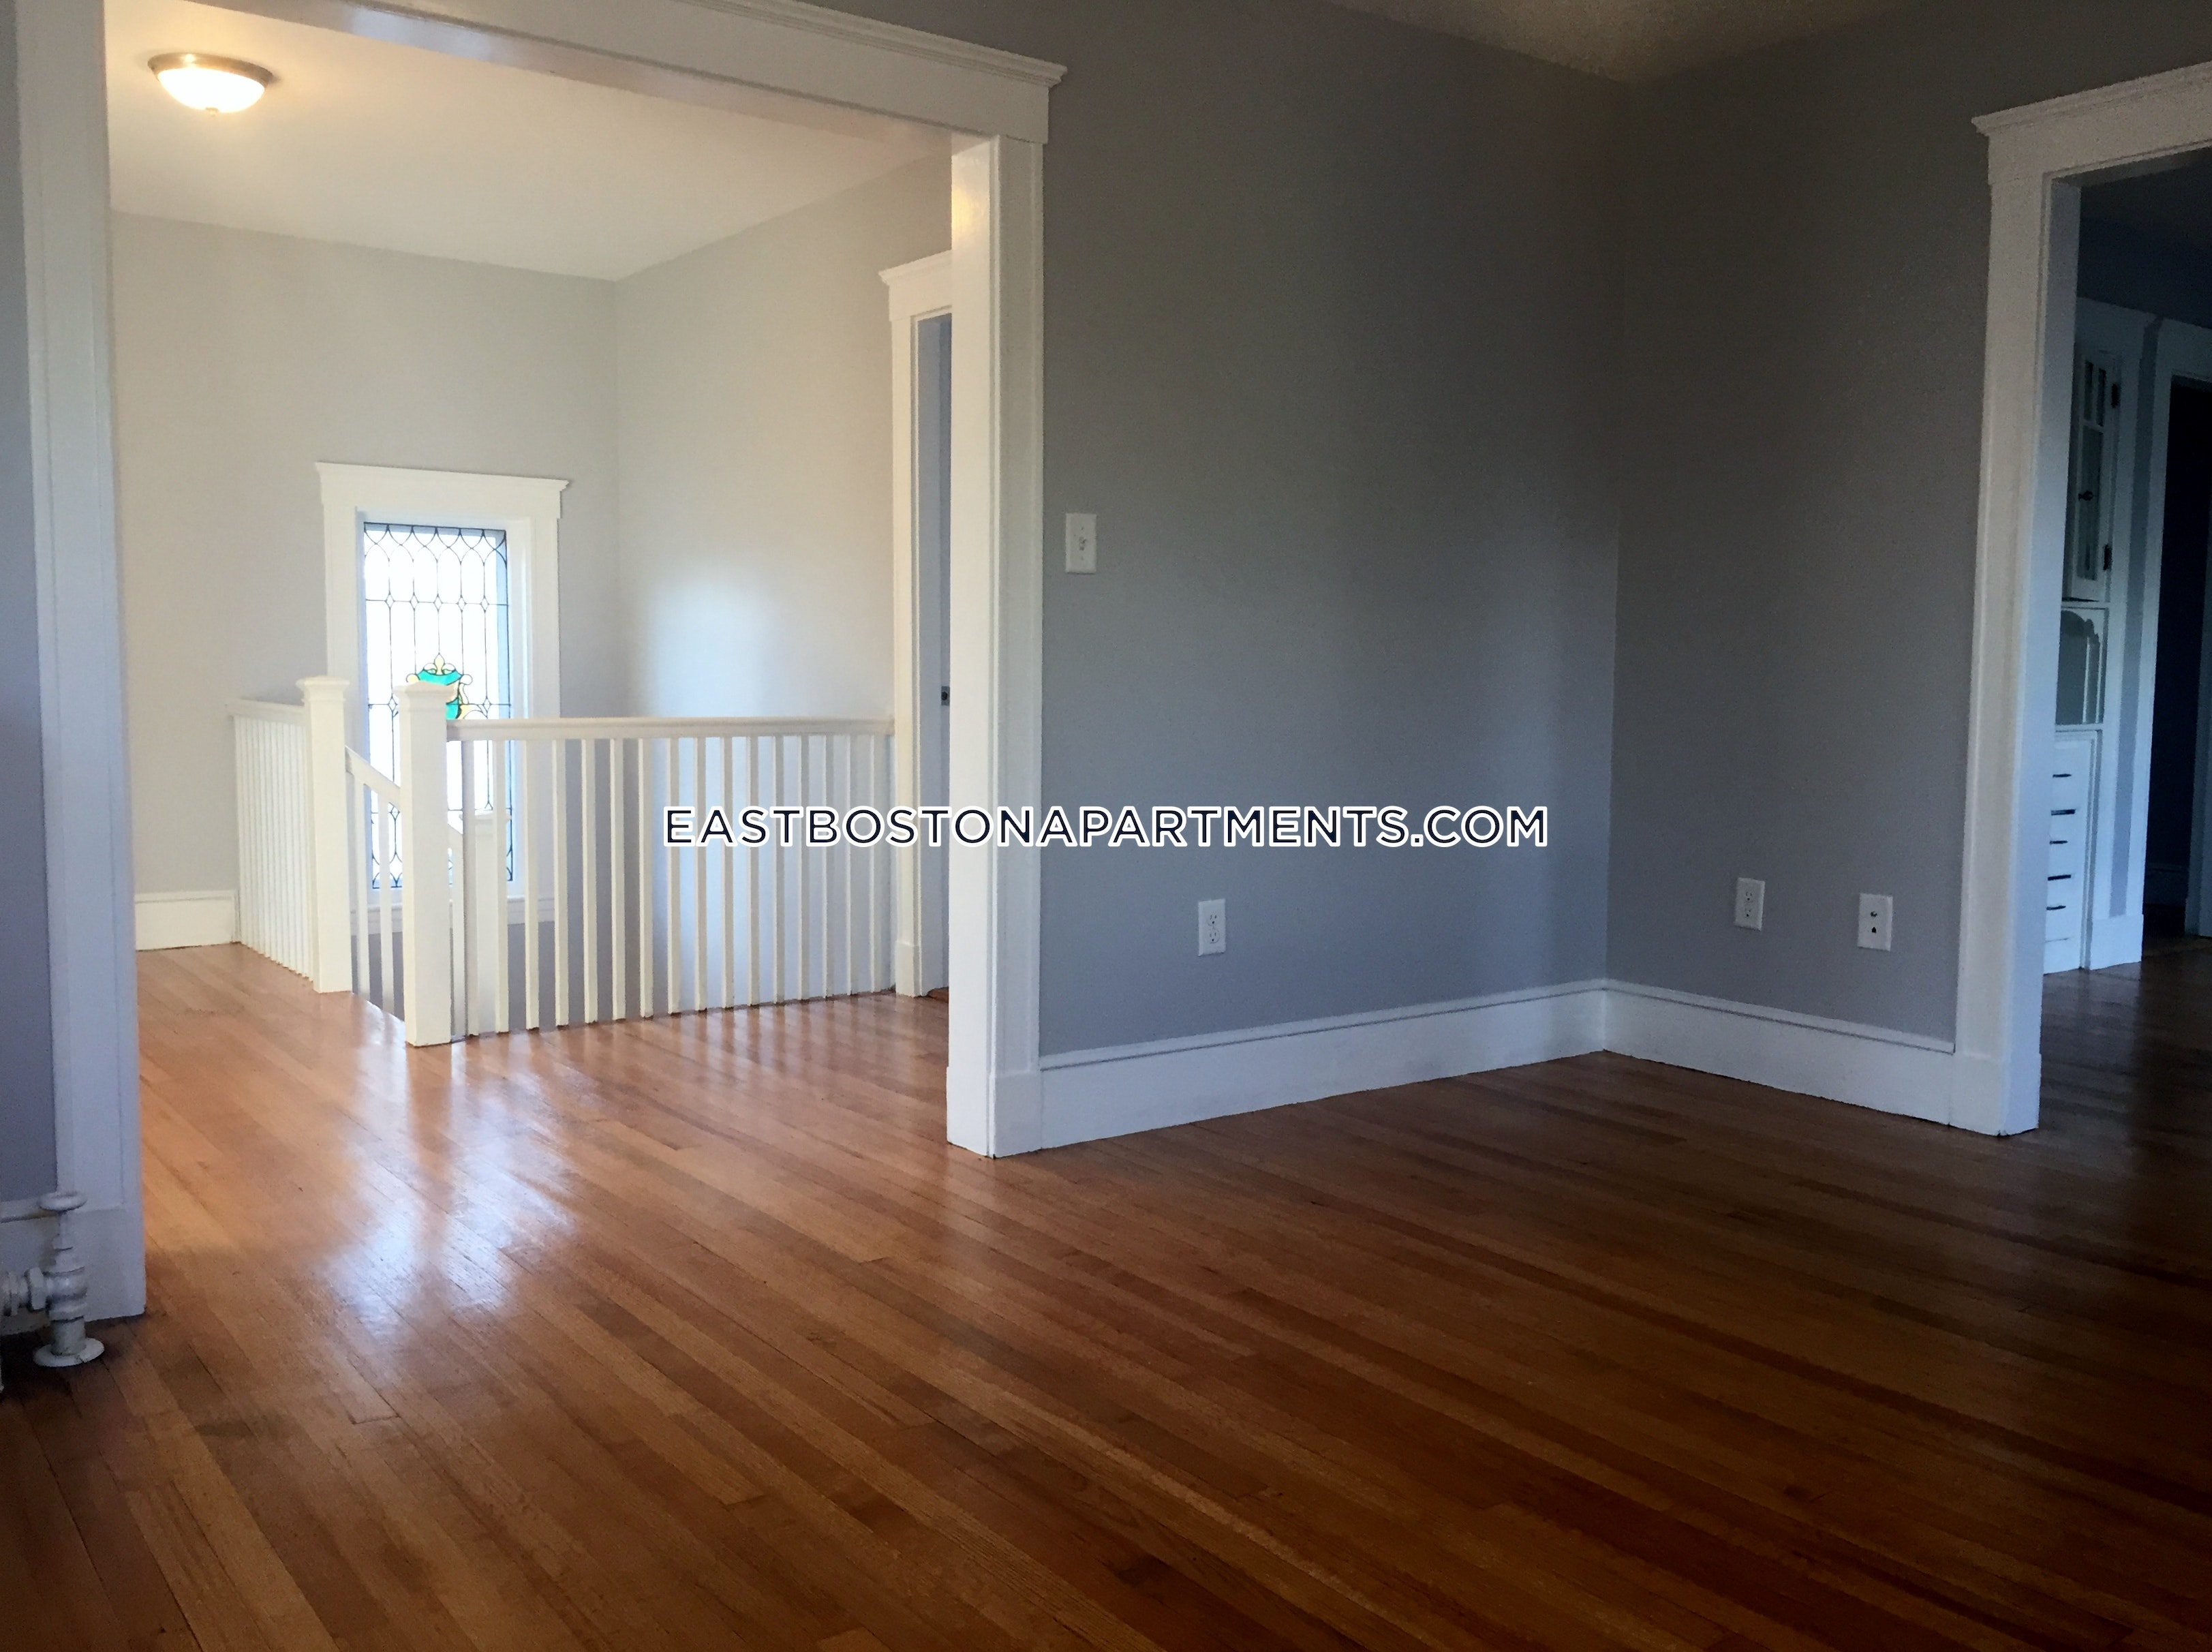 5 Beds 2 Baths - Boston - East Boston - Orient Heights $3,200